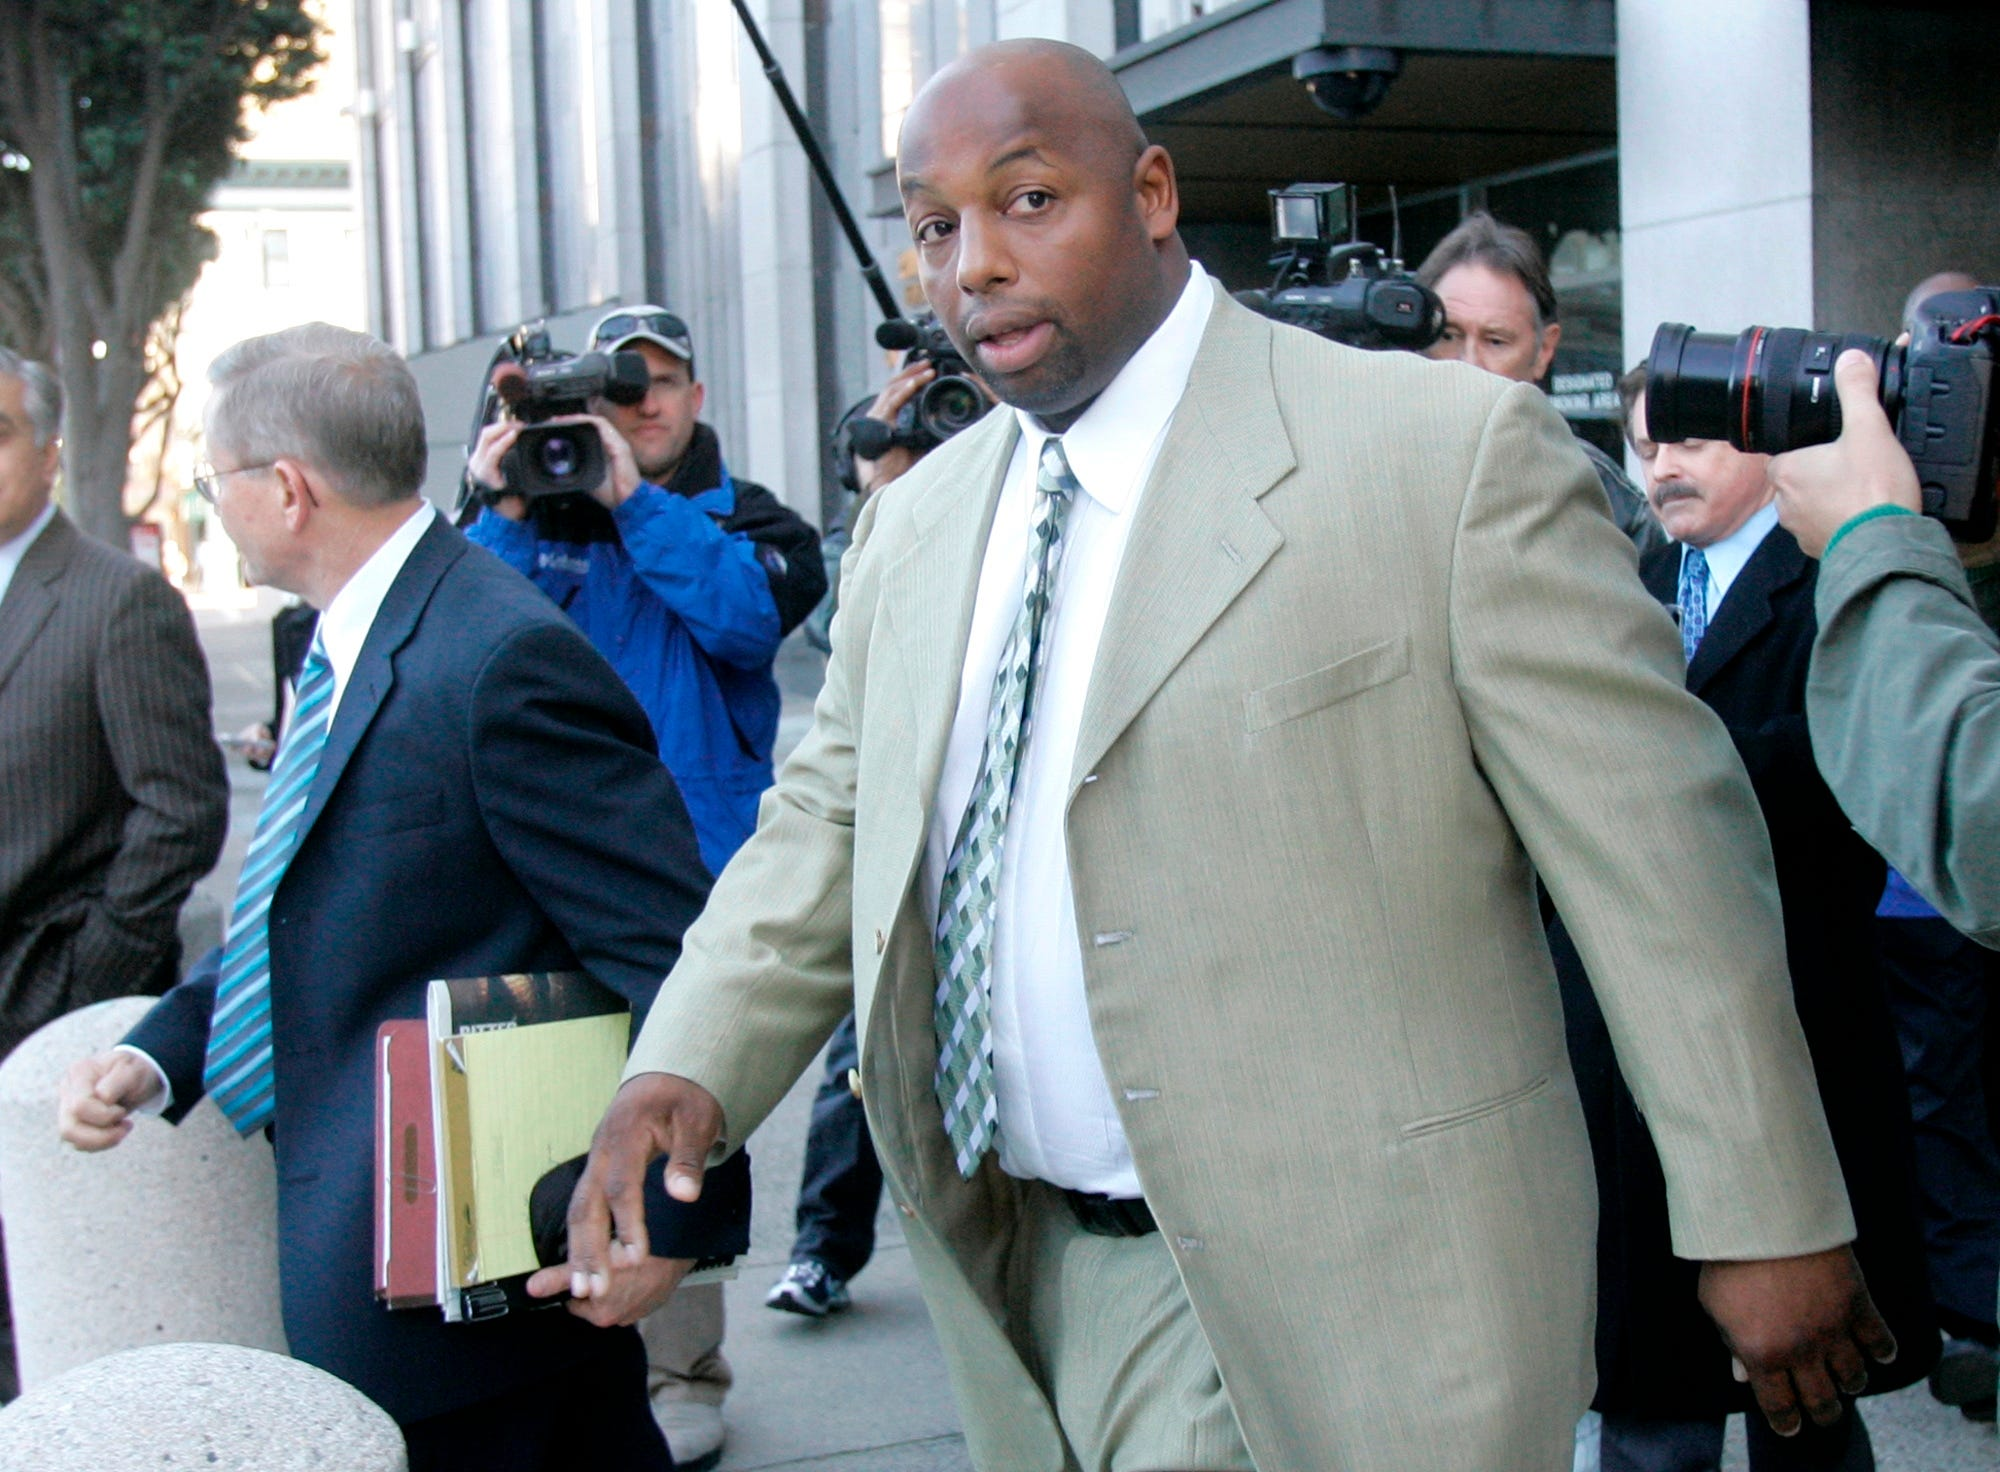 Former NFL star Dana Stubblefield sentenced to 15 years to life for rape conviction